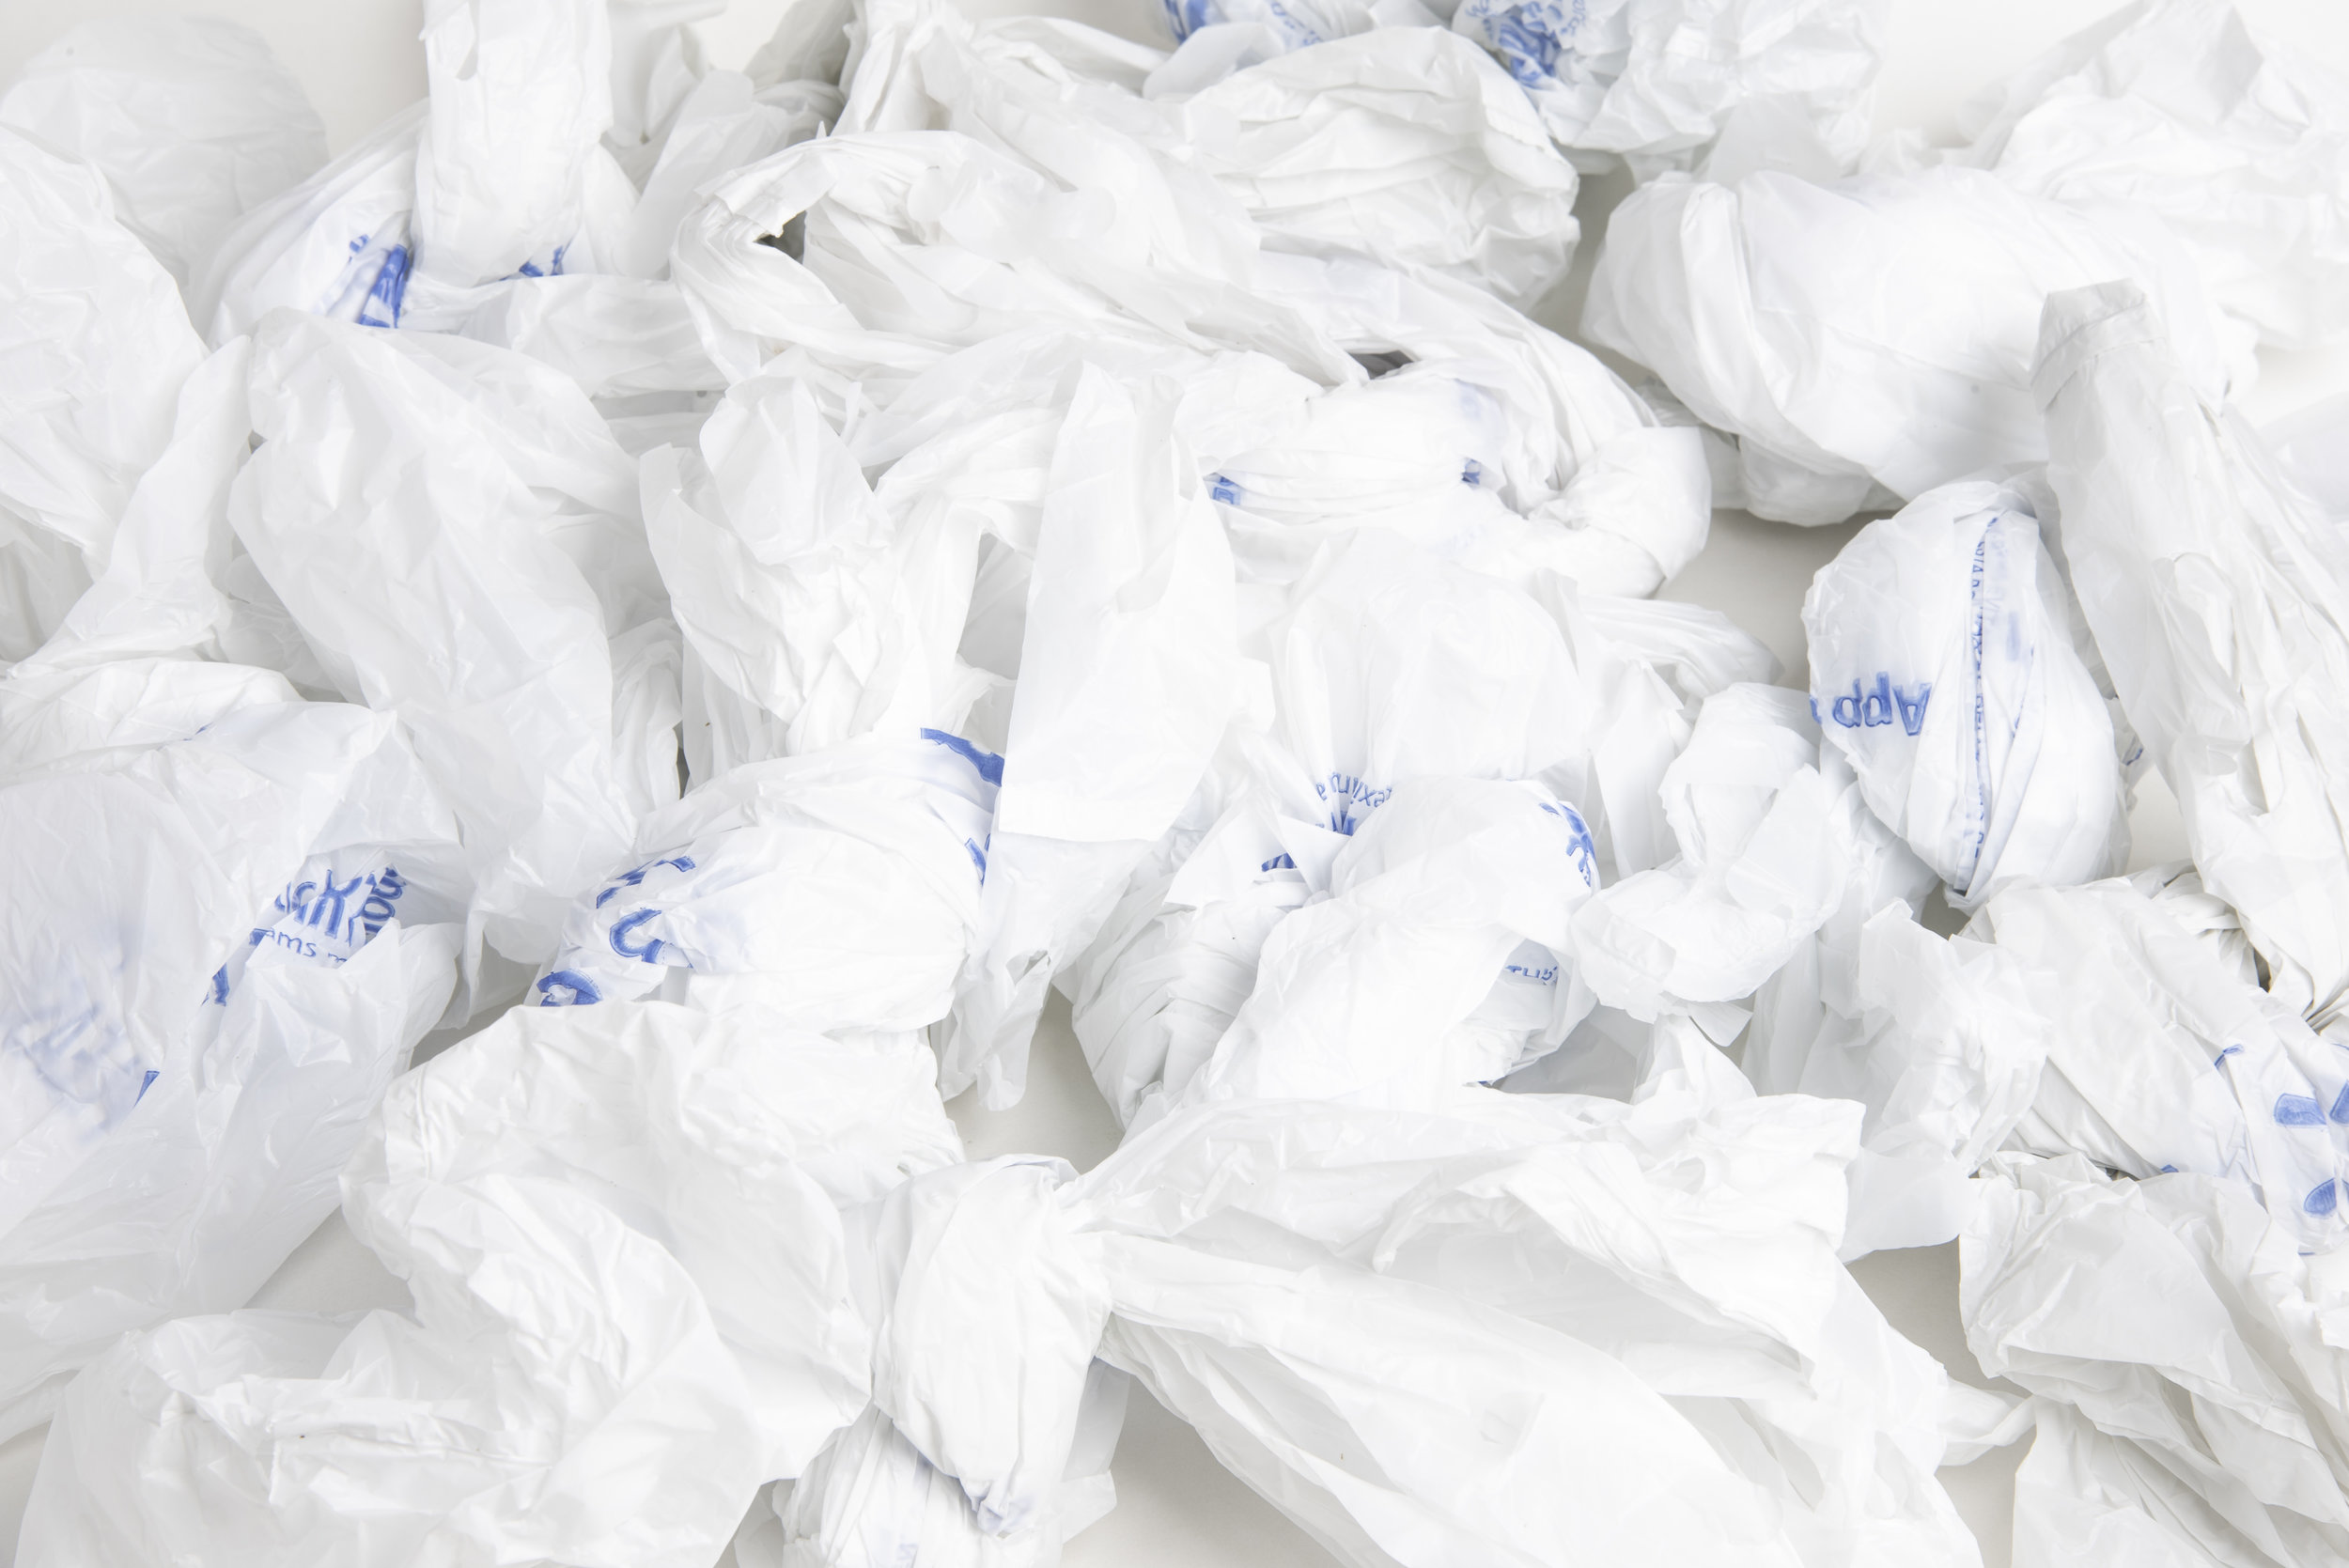 A bunch of discarded single-use plastic grocery bags. Photo:  Dominique James